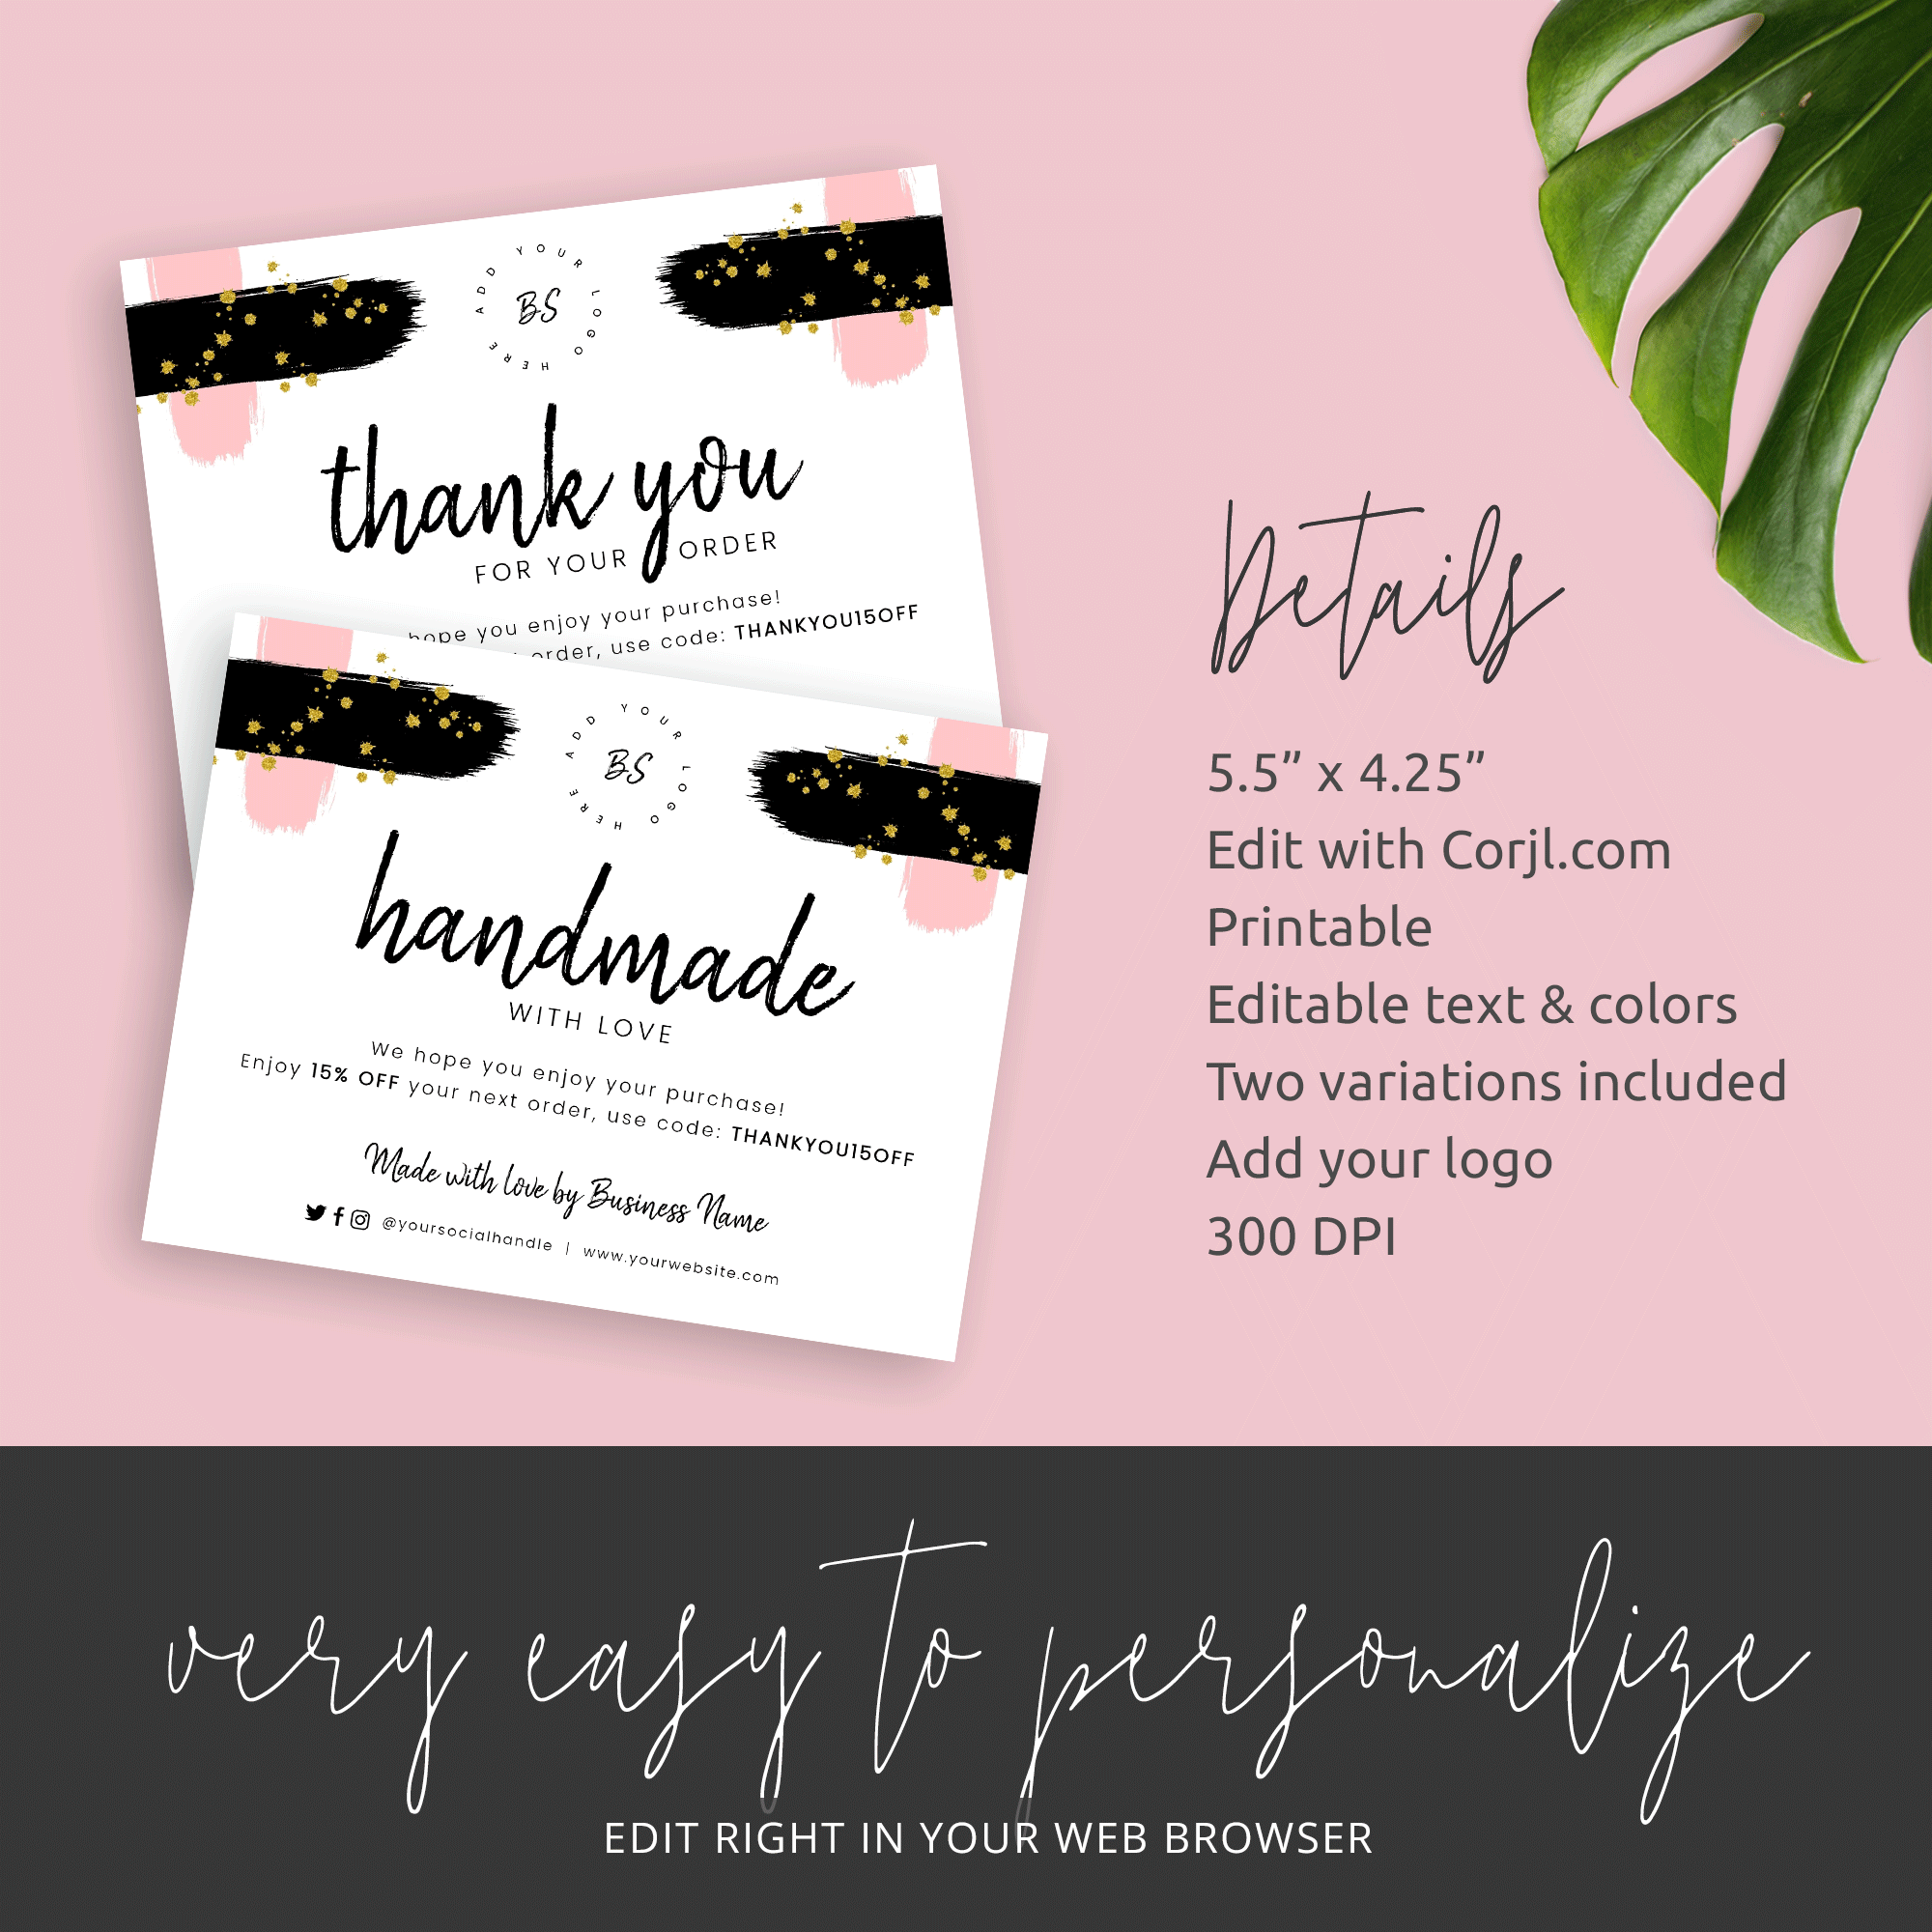 Business Thank You Cards Template - Handmade with Love Inserts